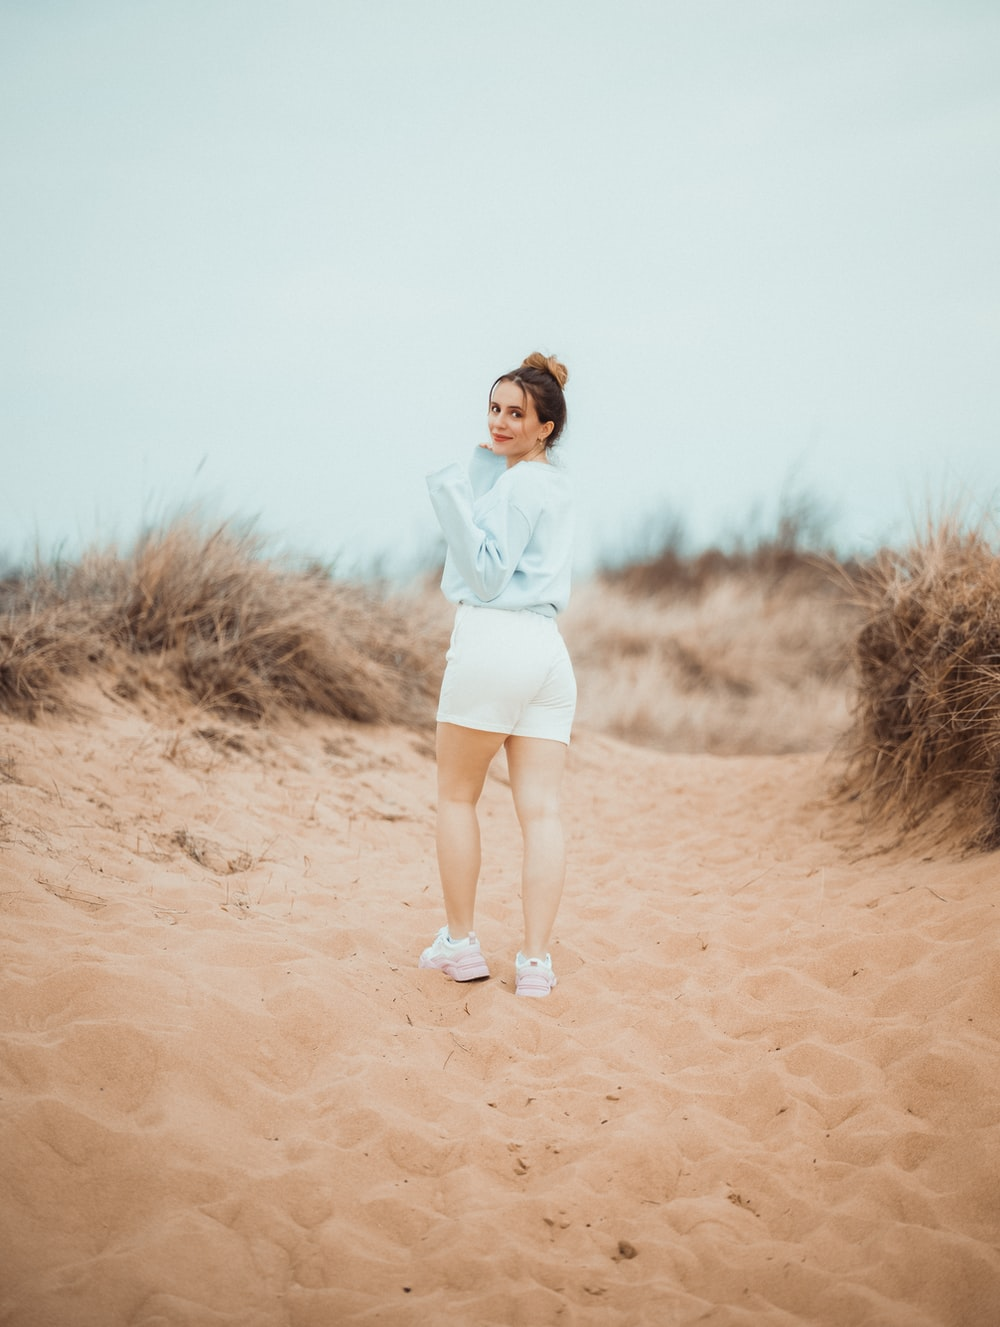 woman in white long sleeve shirt and white shorts standing on brown sand during daytime